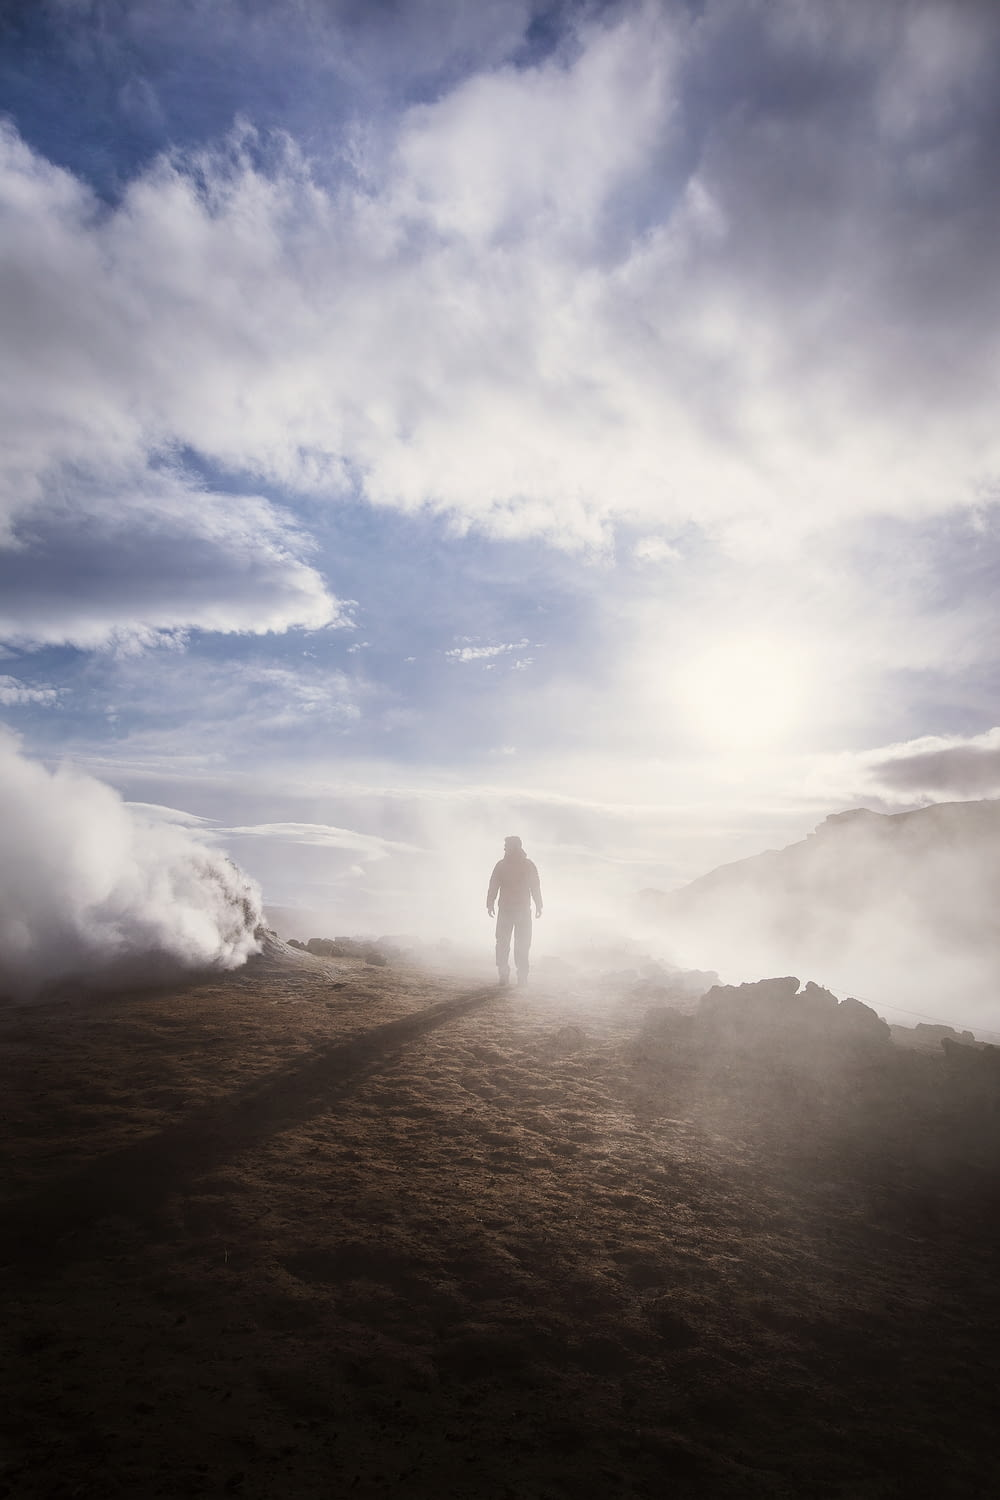 person standing near the edge of a mountain near clouds during day